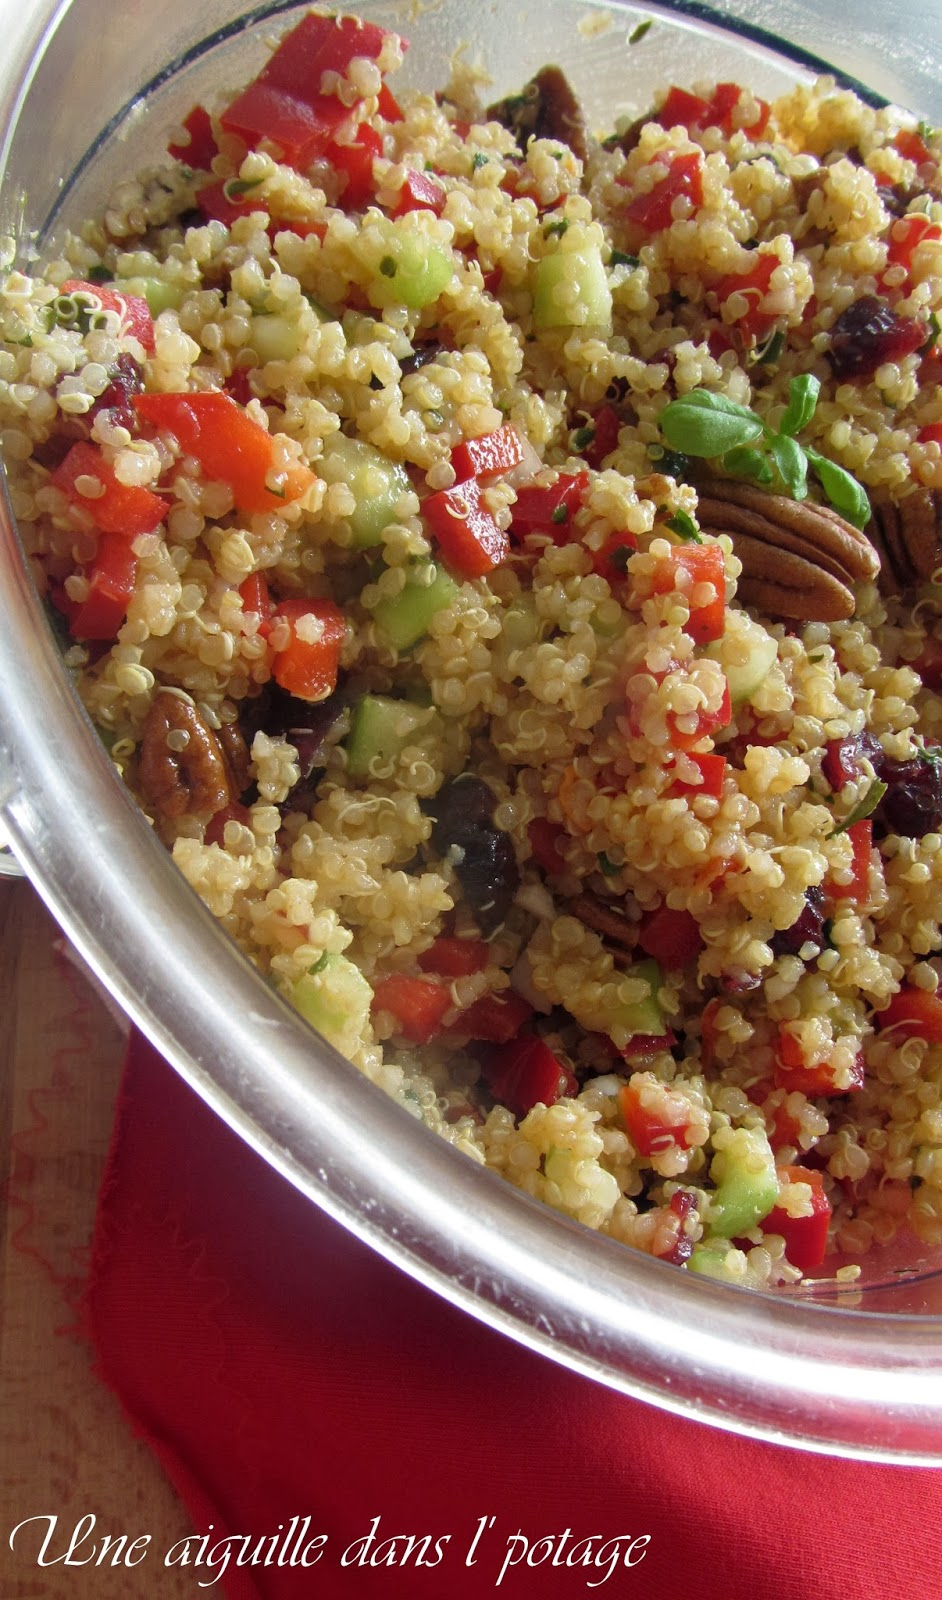 Quinoa salad, cranberries and pecans